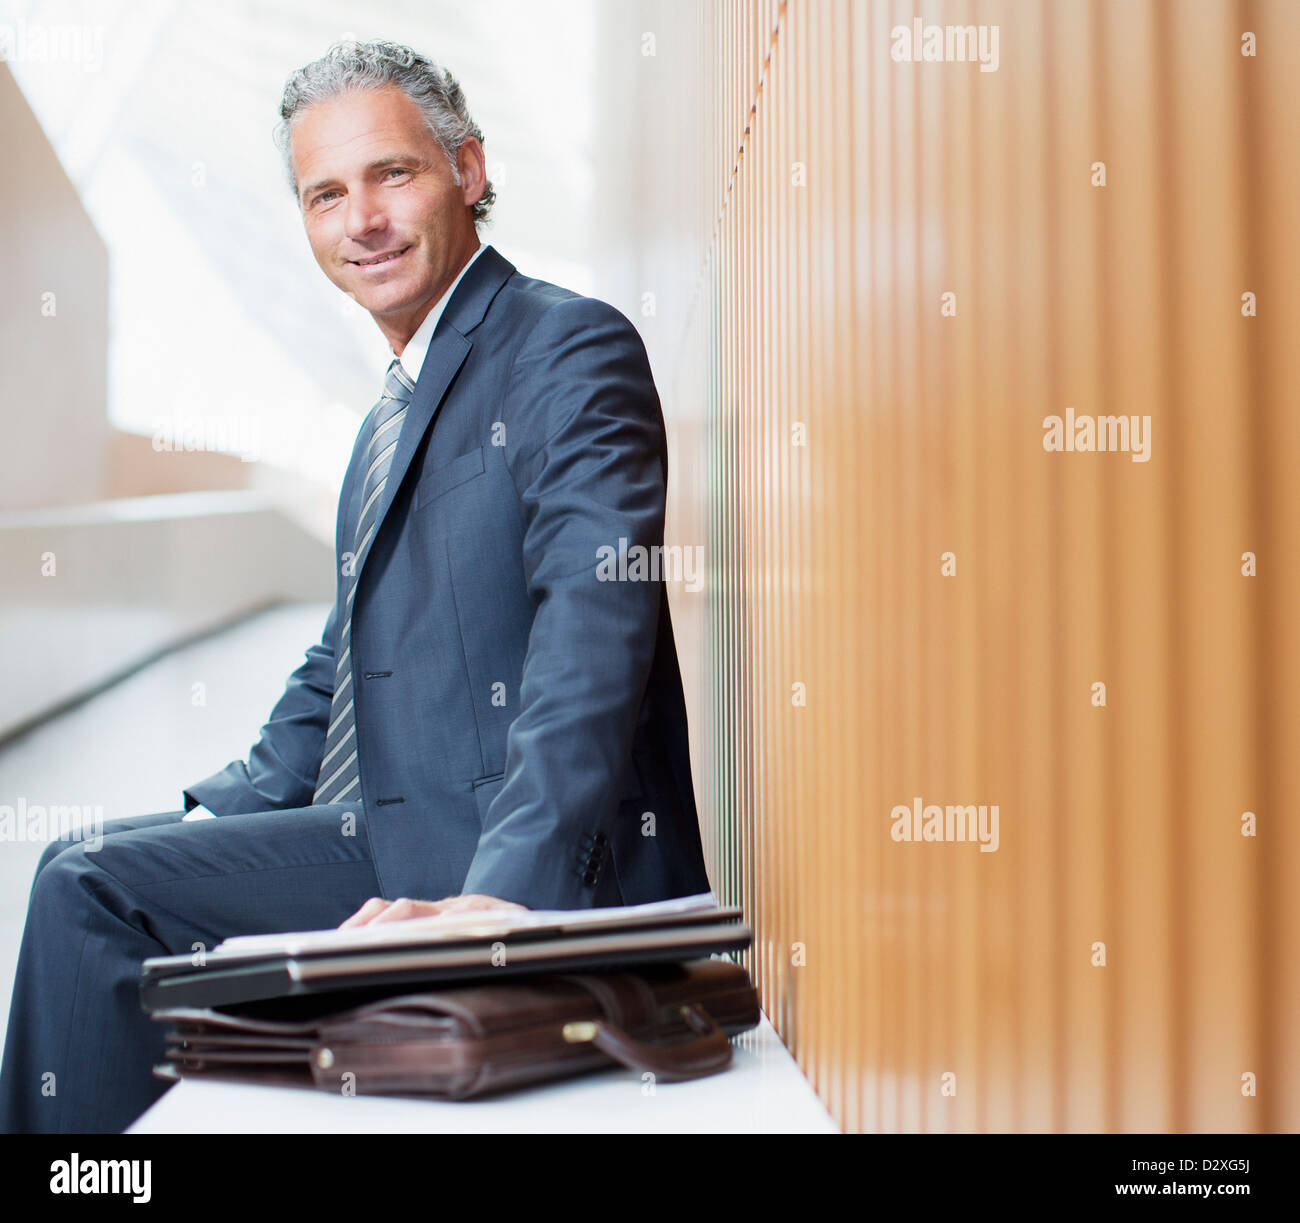 Portrait of smiling businessman with laptop and briefcase - Stock Image